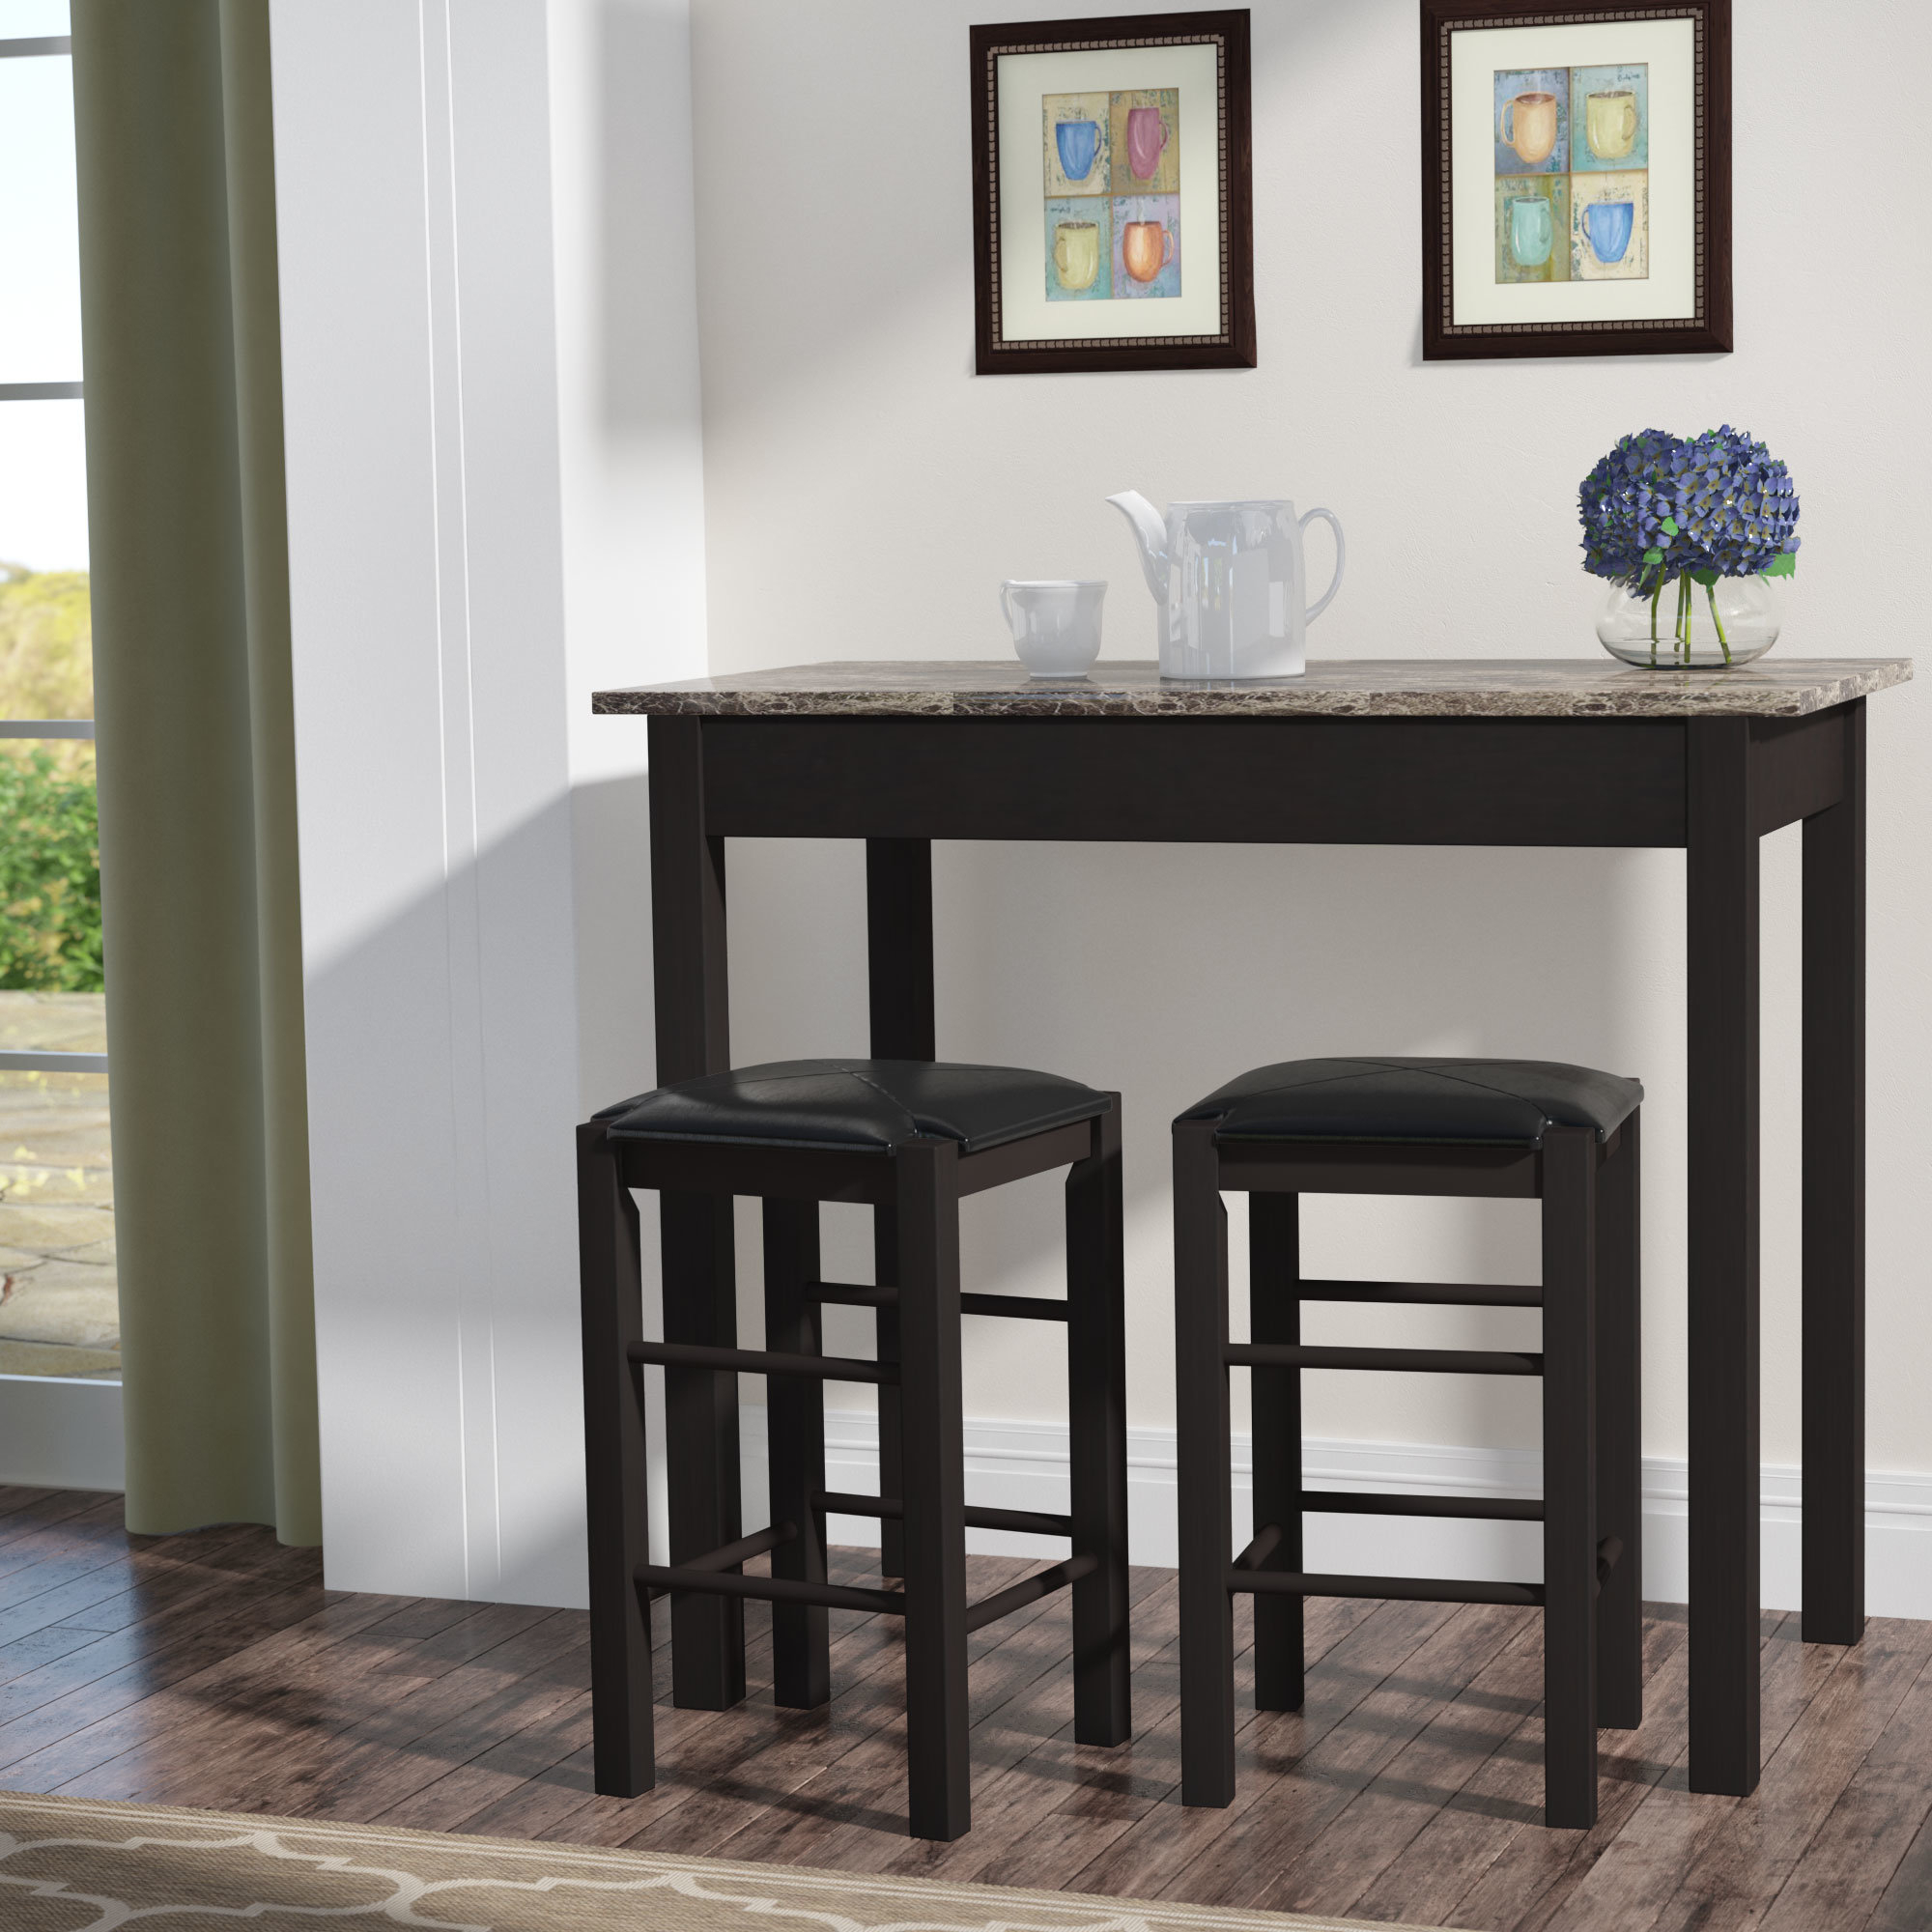 Popular Sheetz 3 Piece Counter Height Dining Set Regarding Debby Small Space 3 Piece Dining Sets (View 17 of 25)